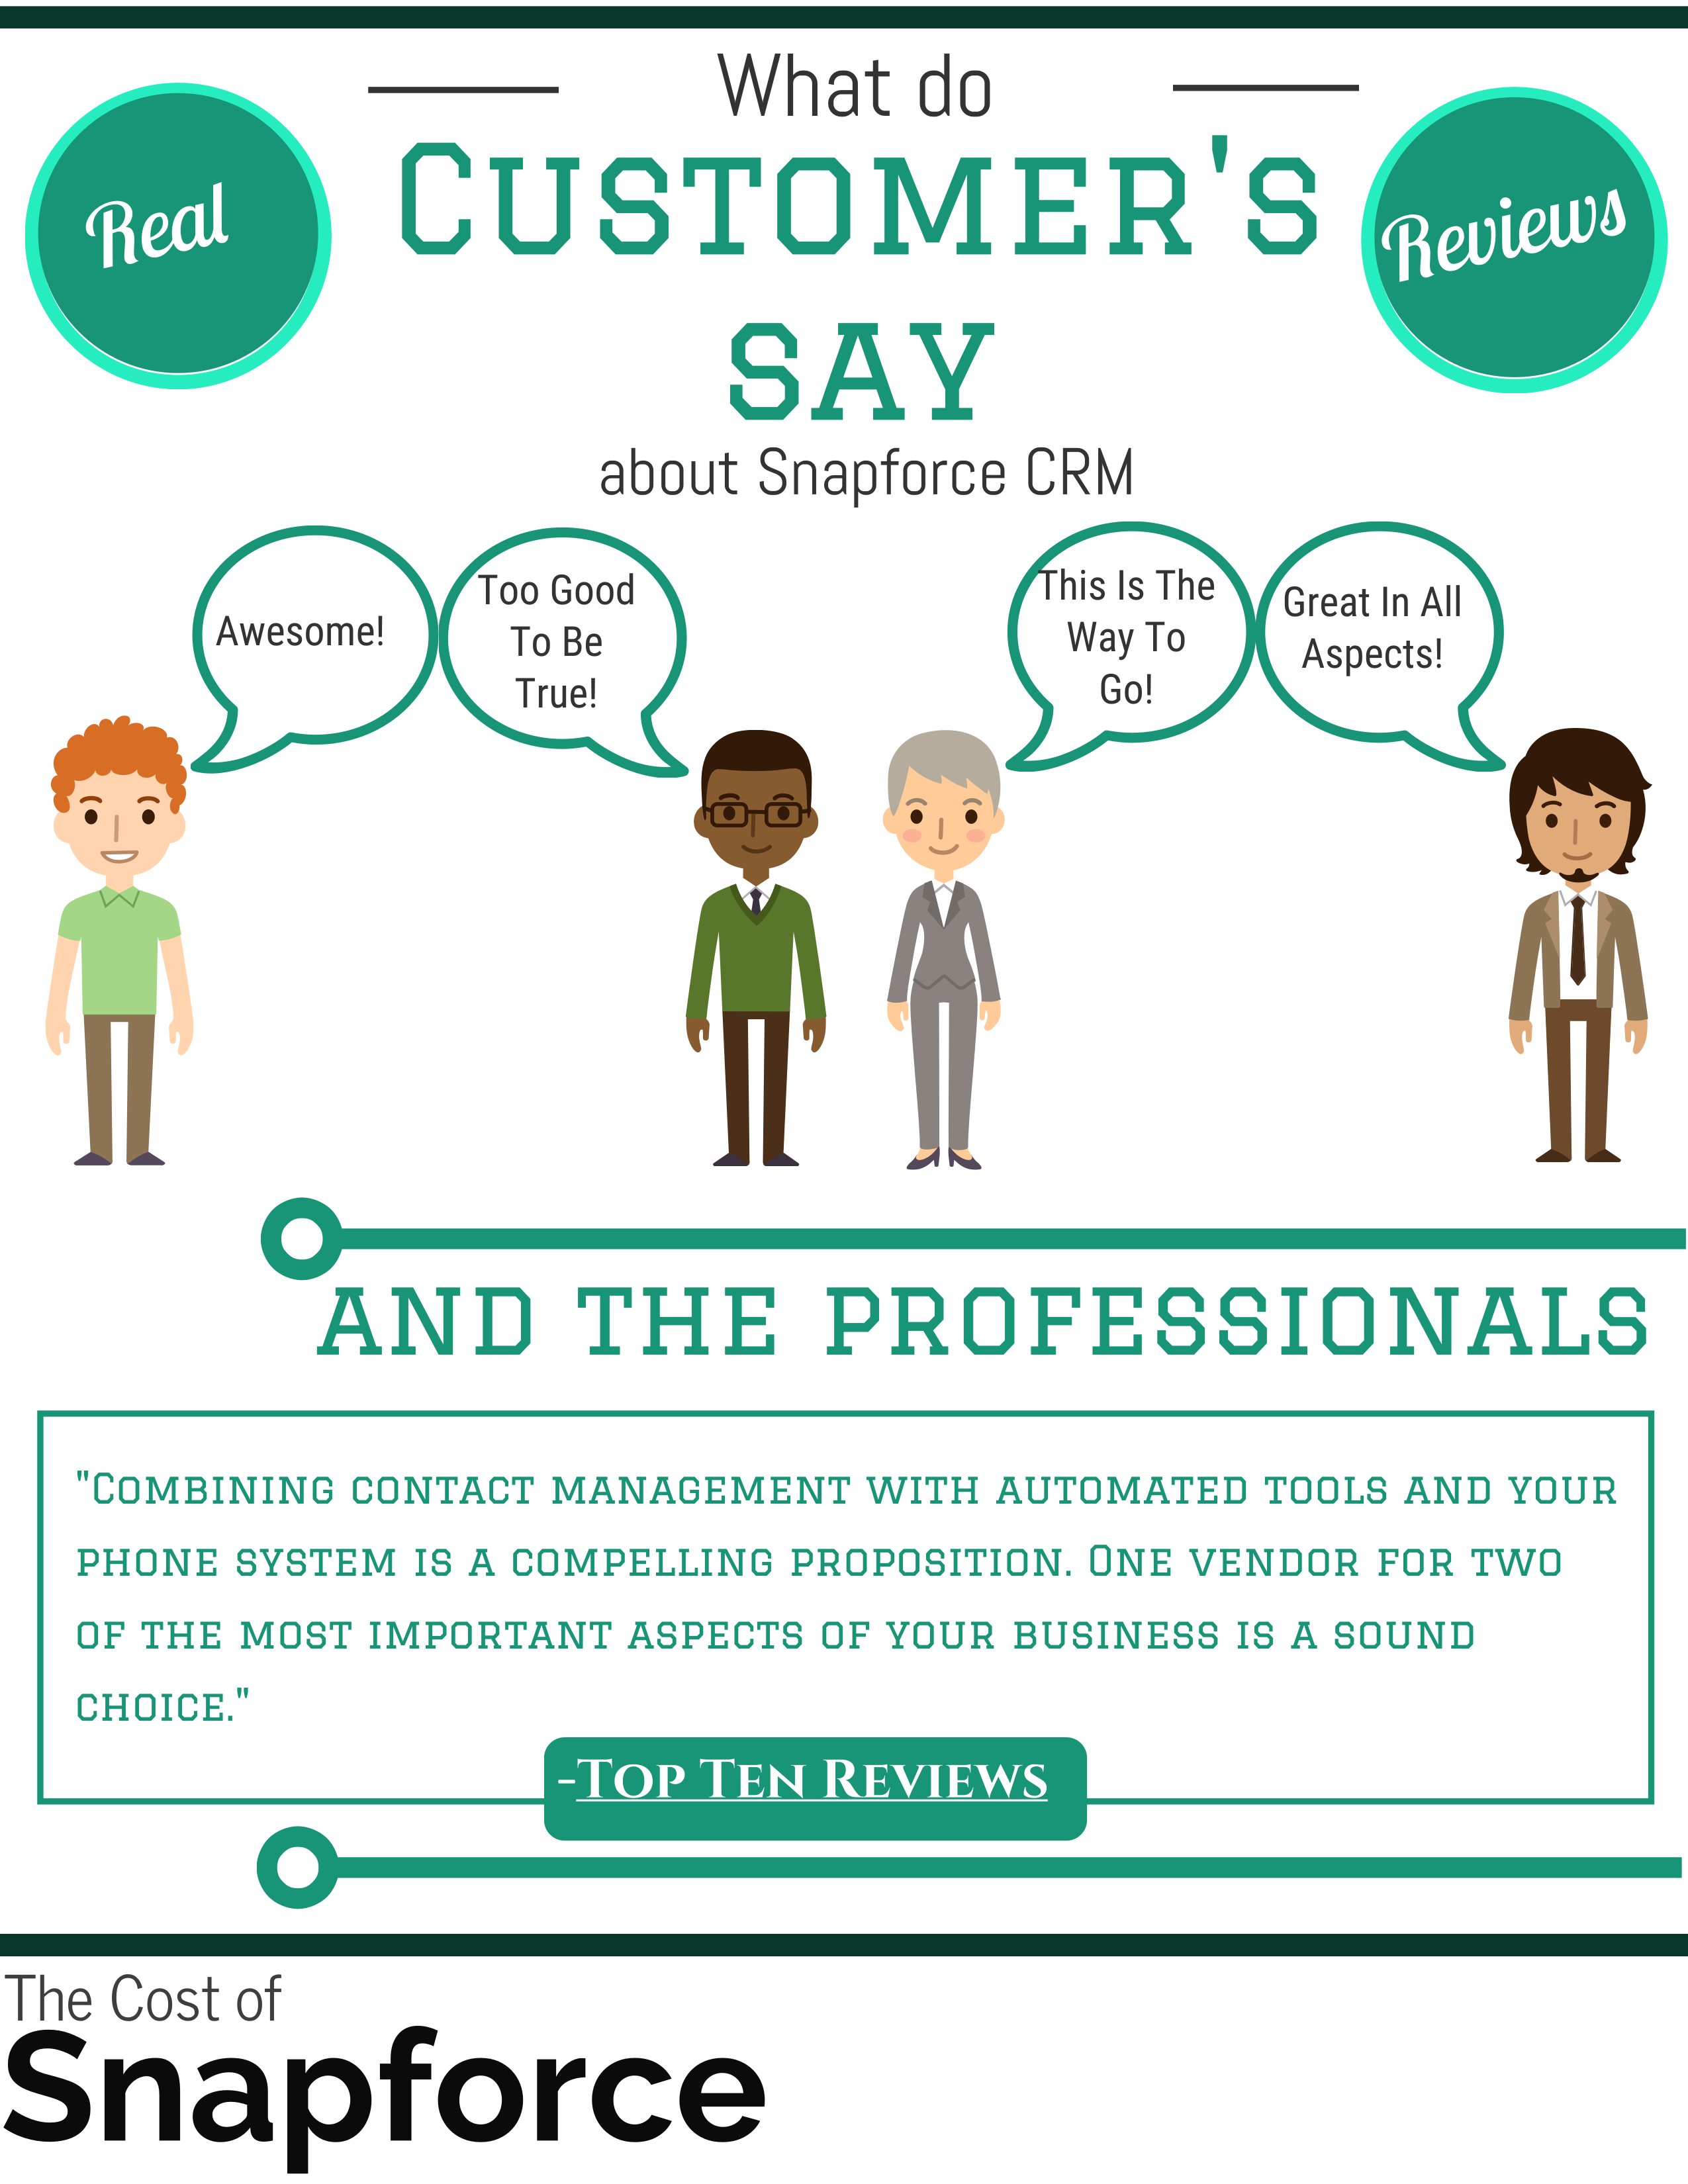 Snapforce CRM Infographic Page 3